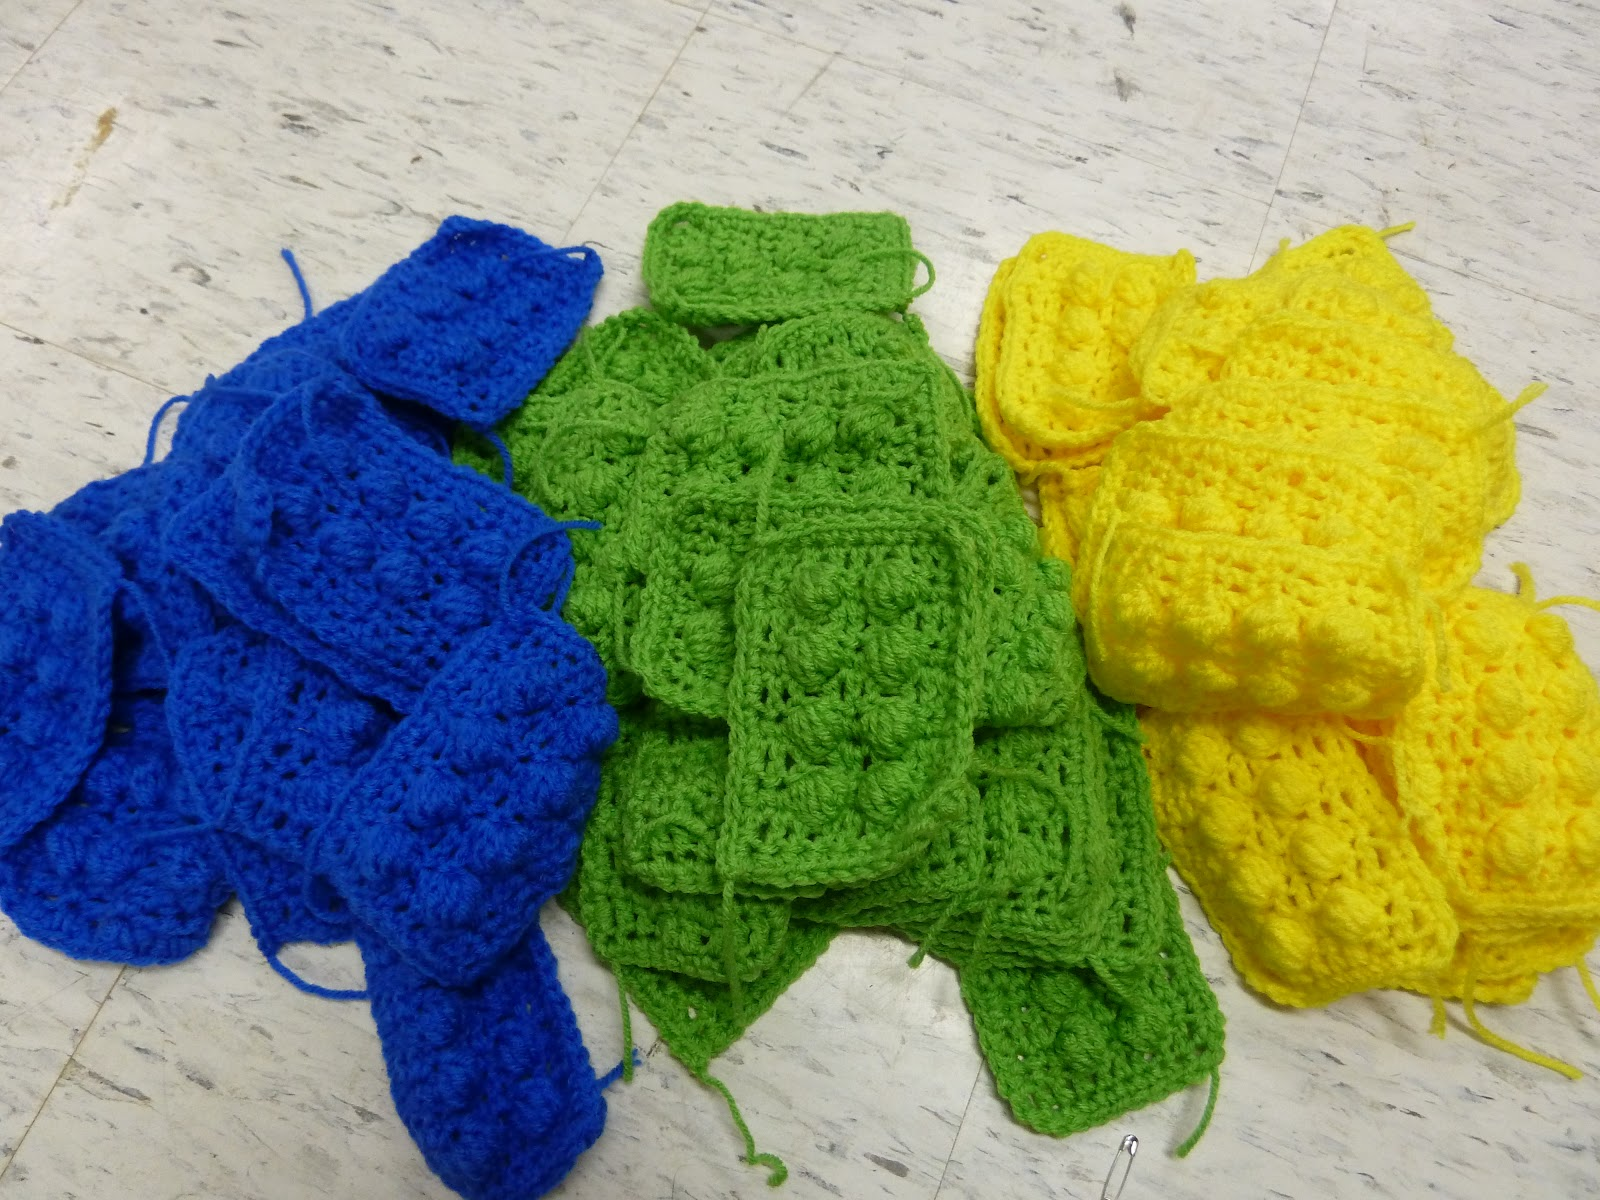 Knotted-Thread: Crochet Lego Blanket